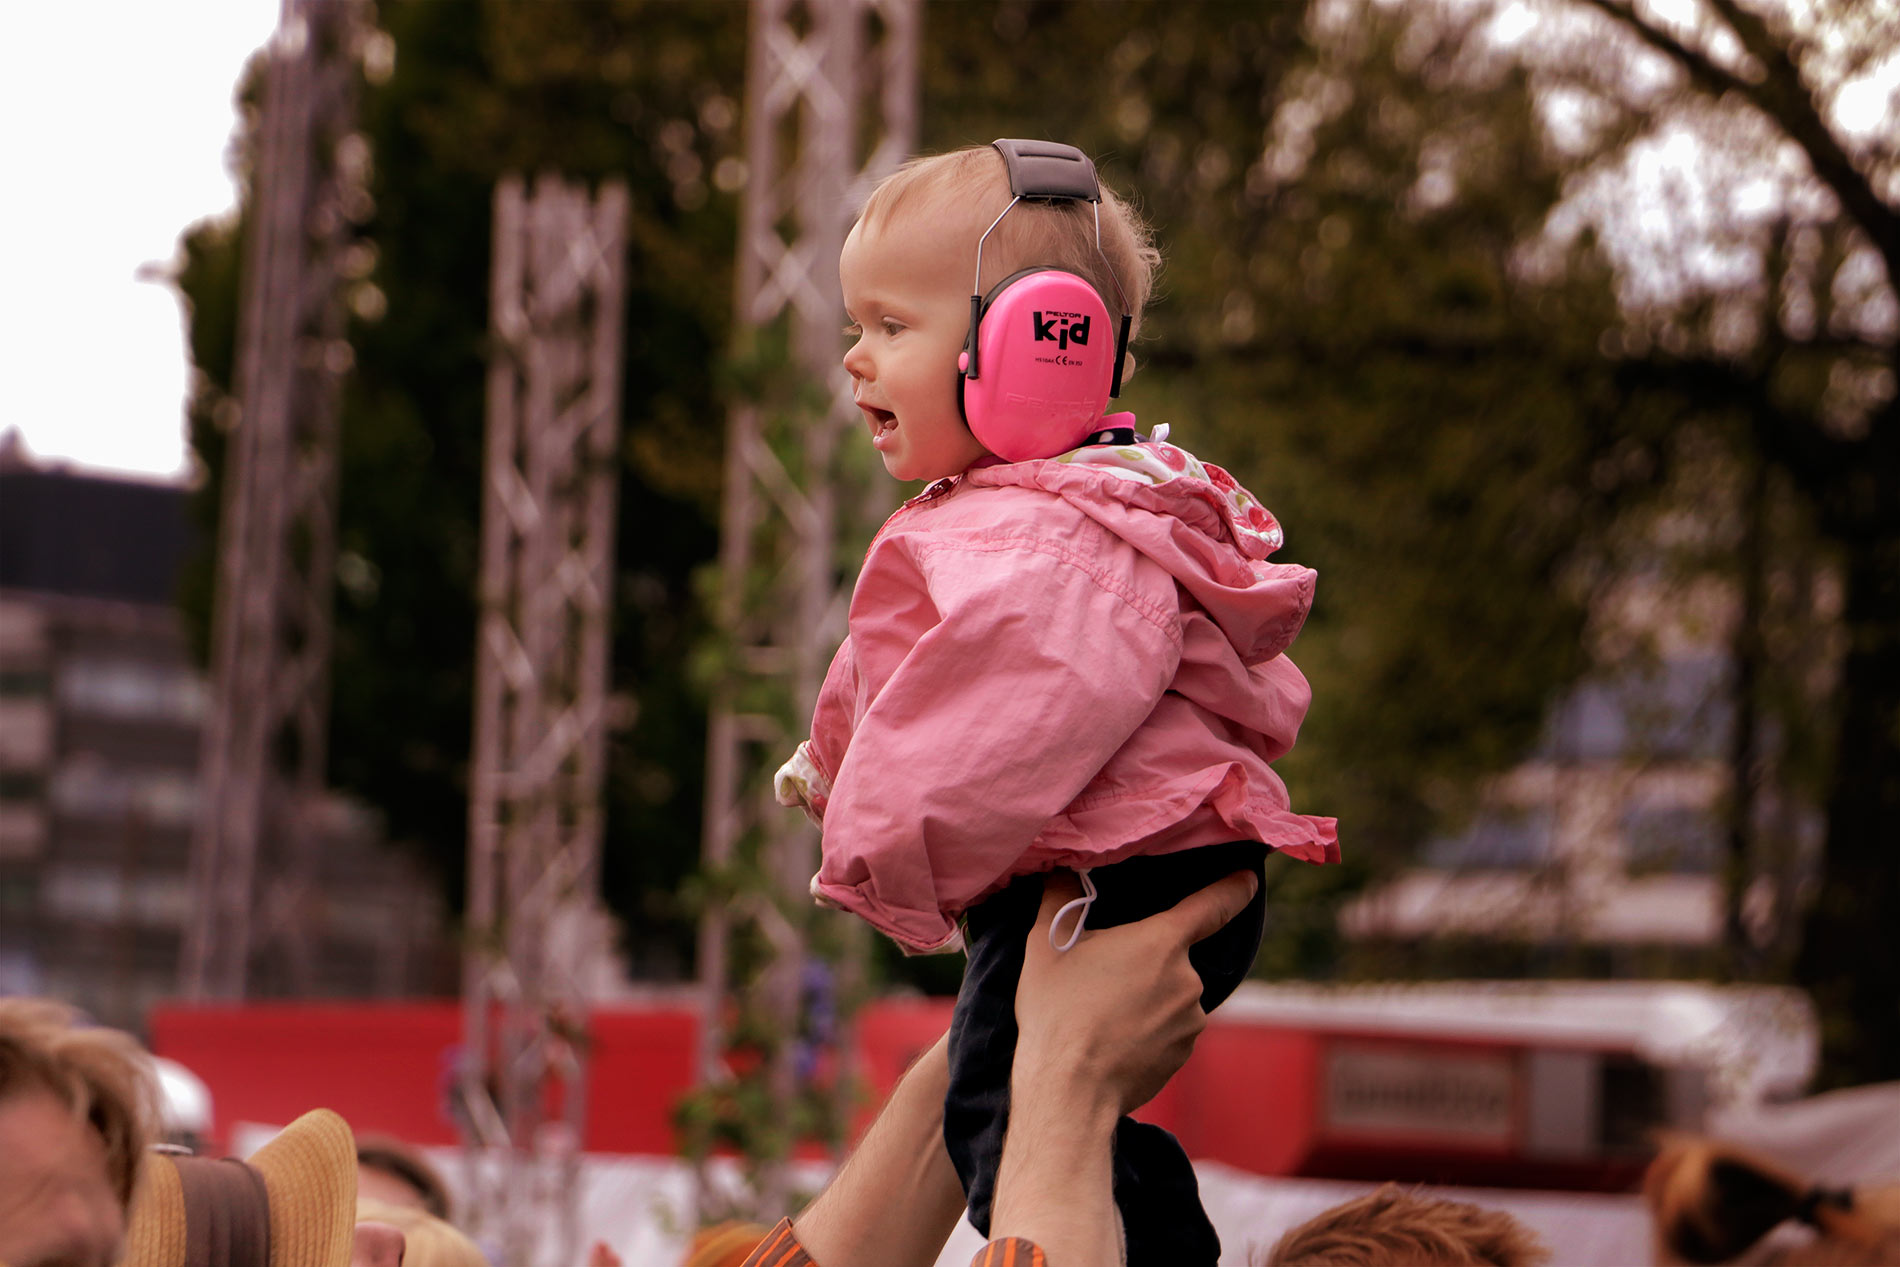 Families enjoying the World Village Festival at Kaisaniemi park in Helsinki, Finland on May 24 2015. Picture: Tony Öhberg for Finland Today